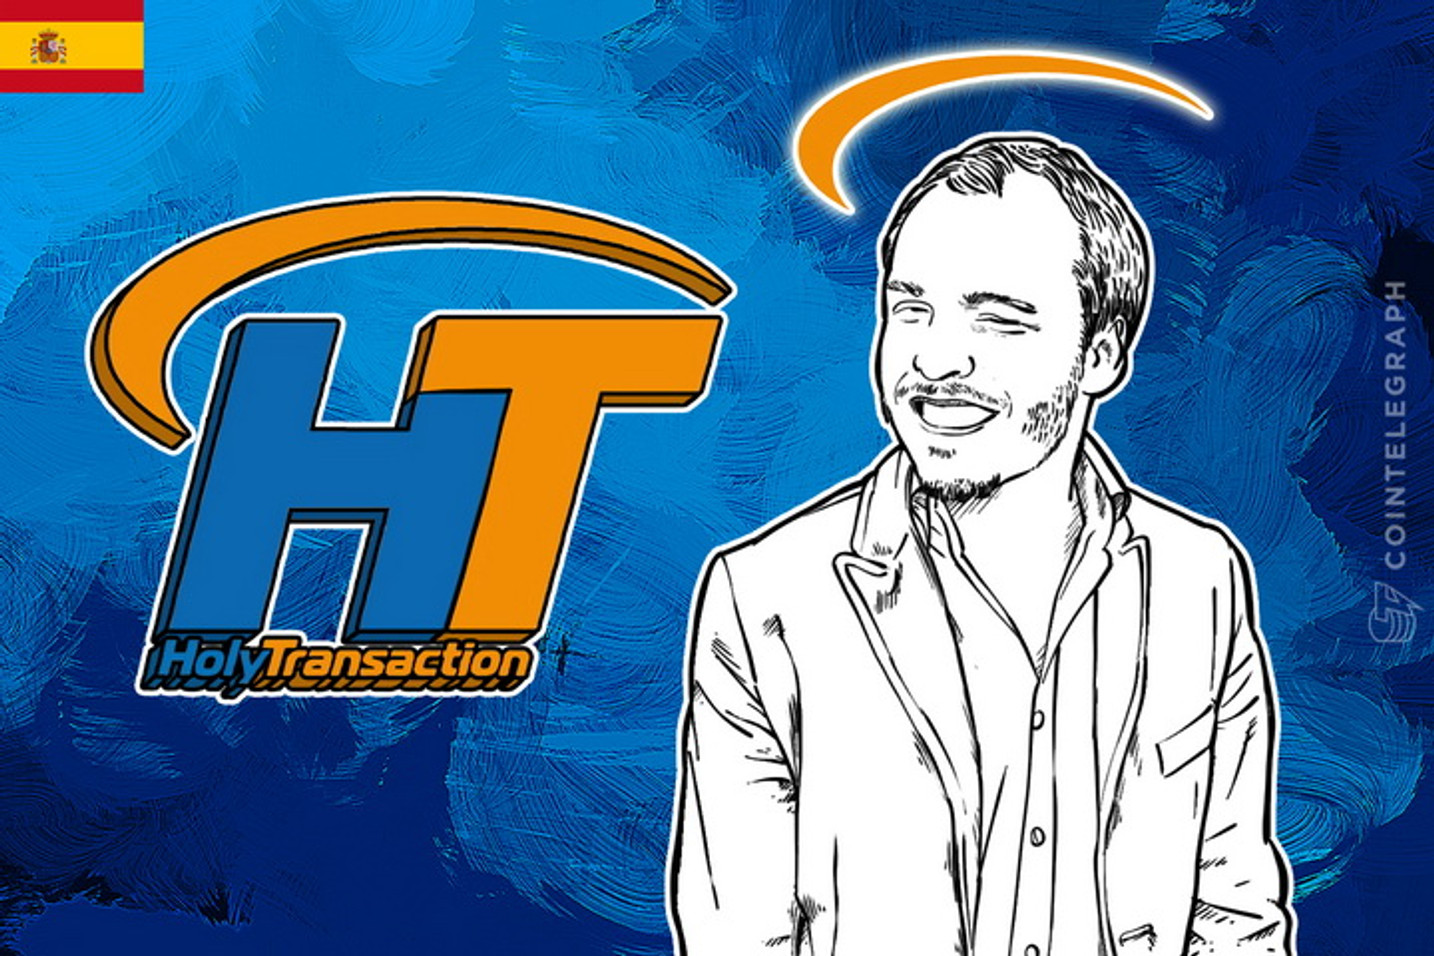 Entrevista a Francesco Simonetti, CEO de HolyTransaction